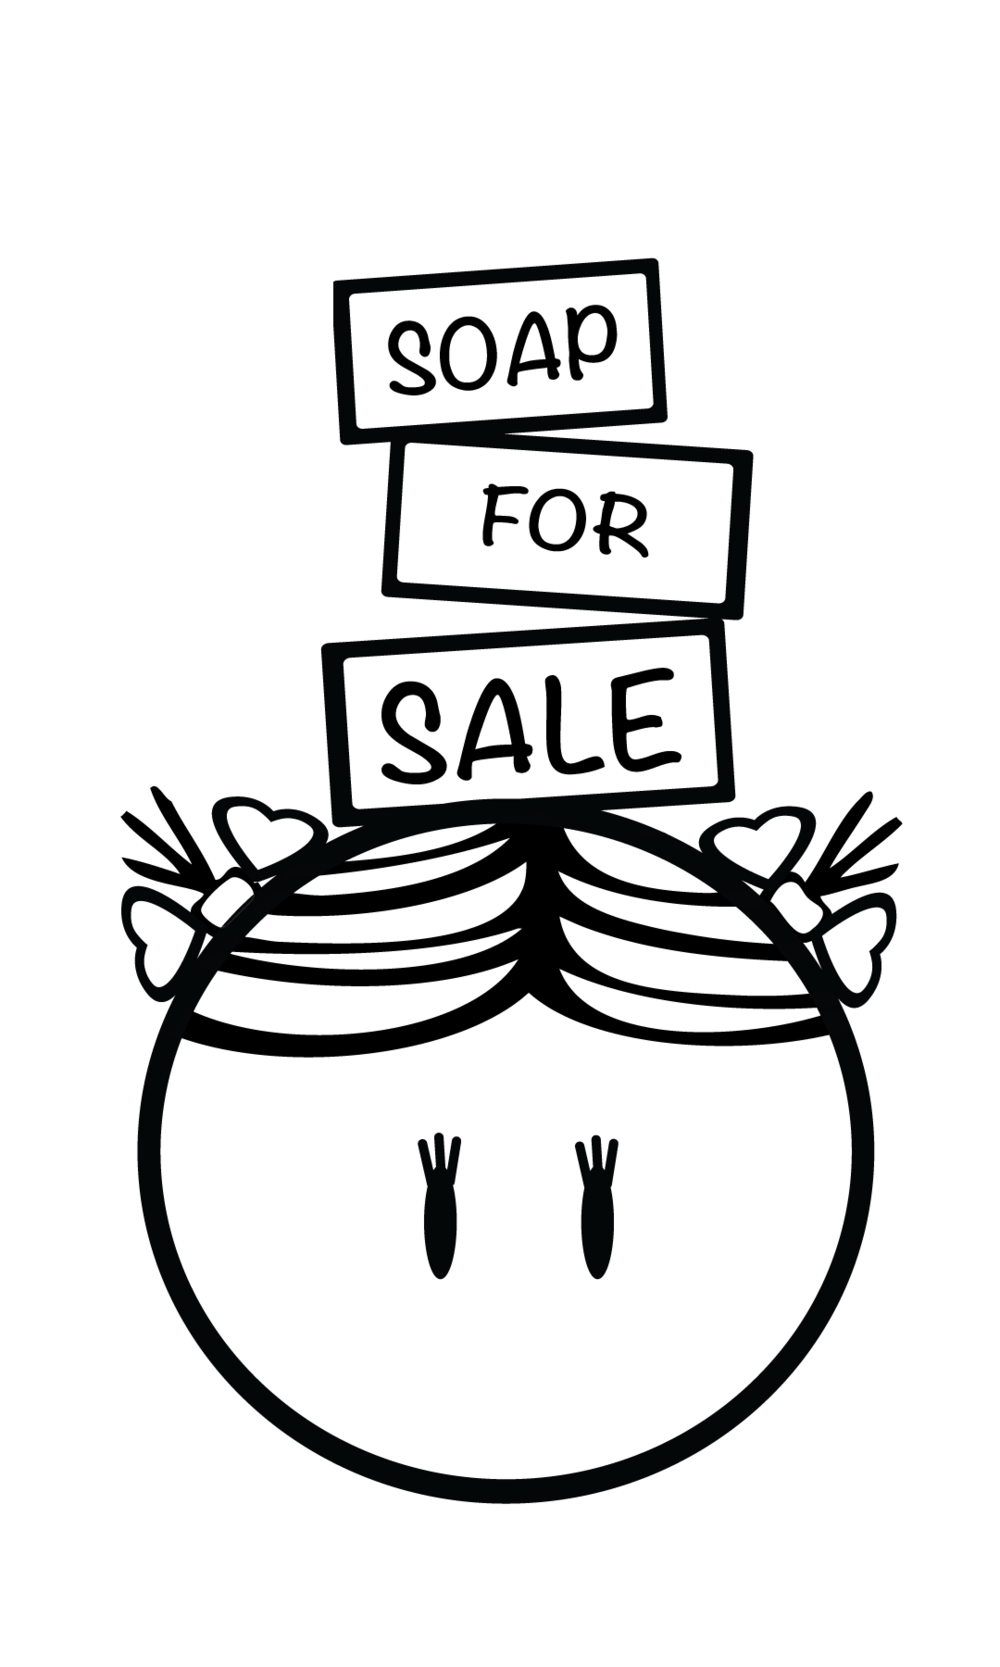 soap for sale, custom logo